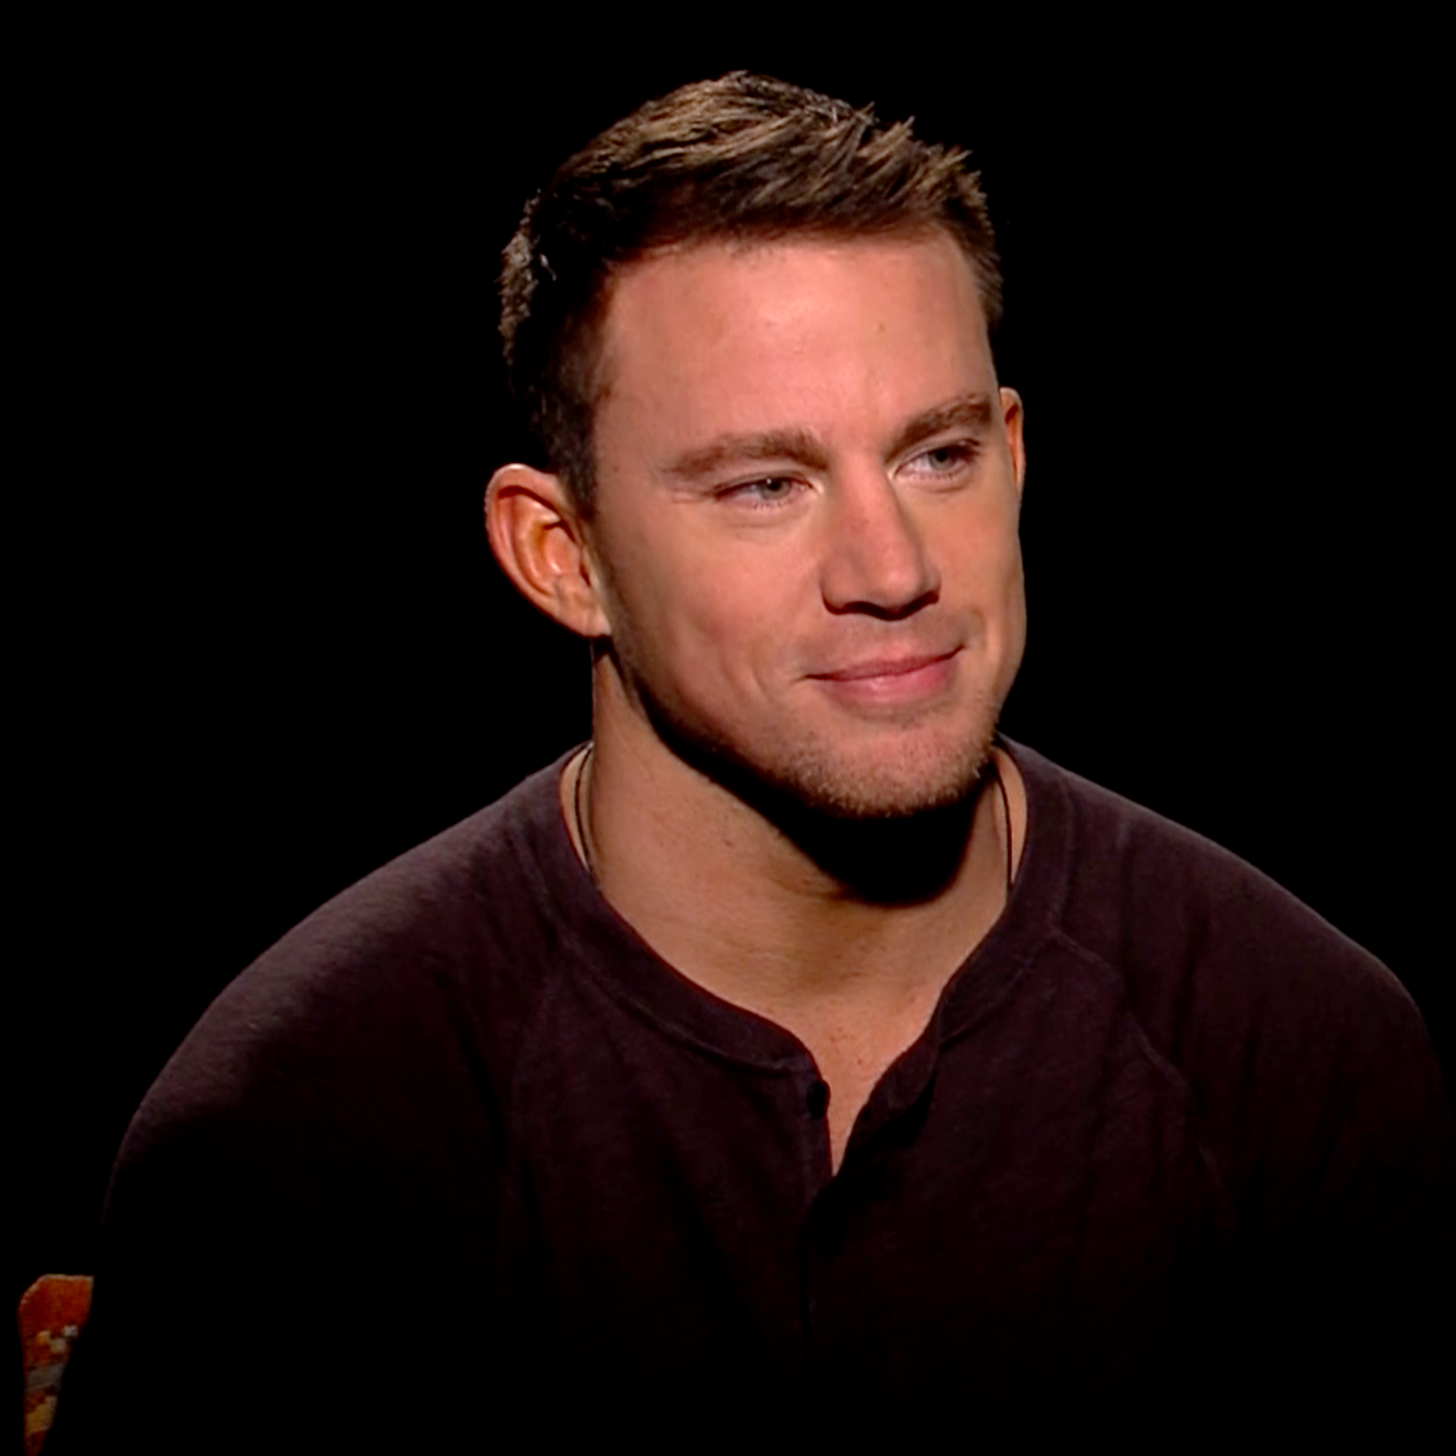 Channing Tatum Names the Film He'll Make Everly Watch as